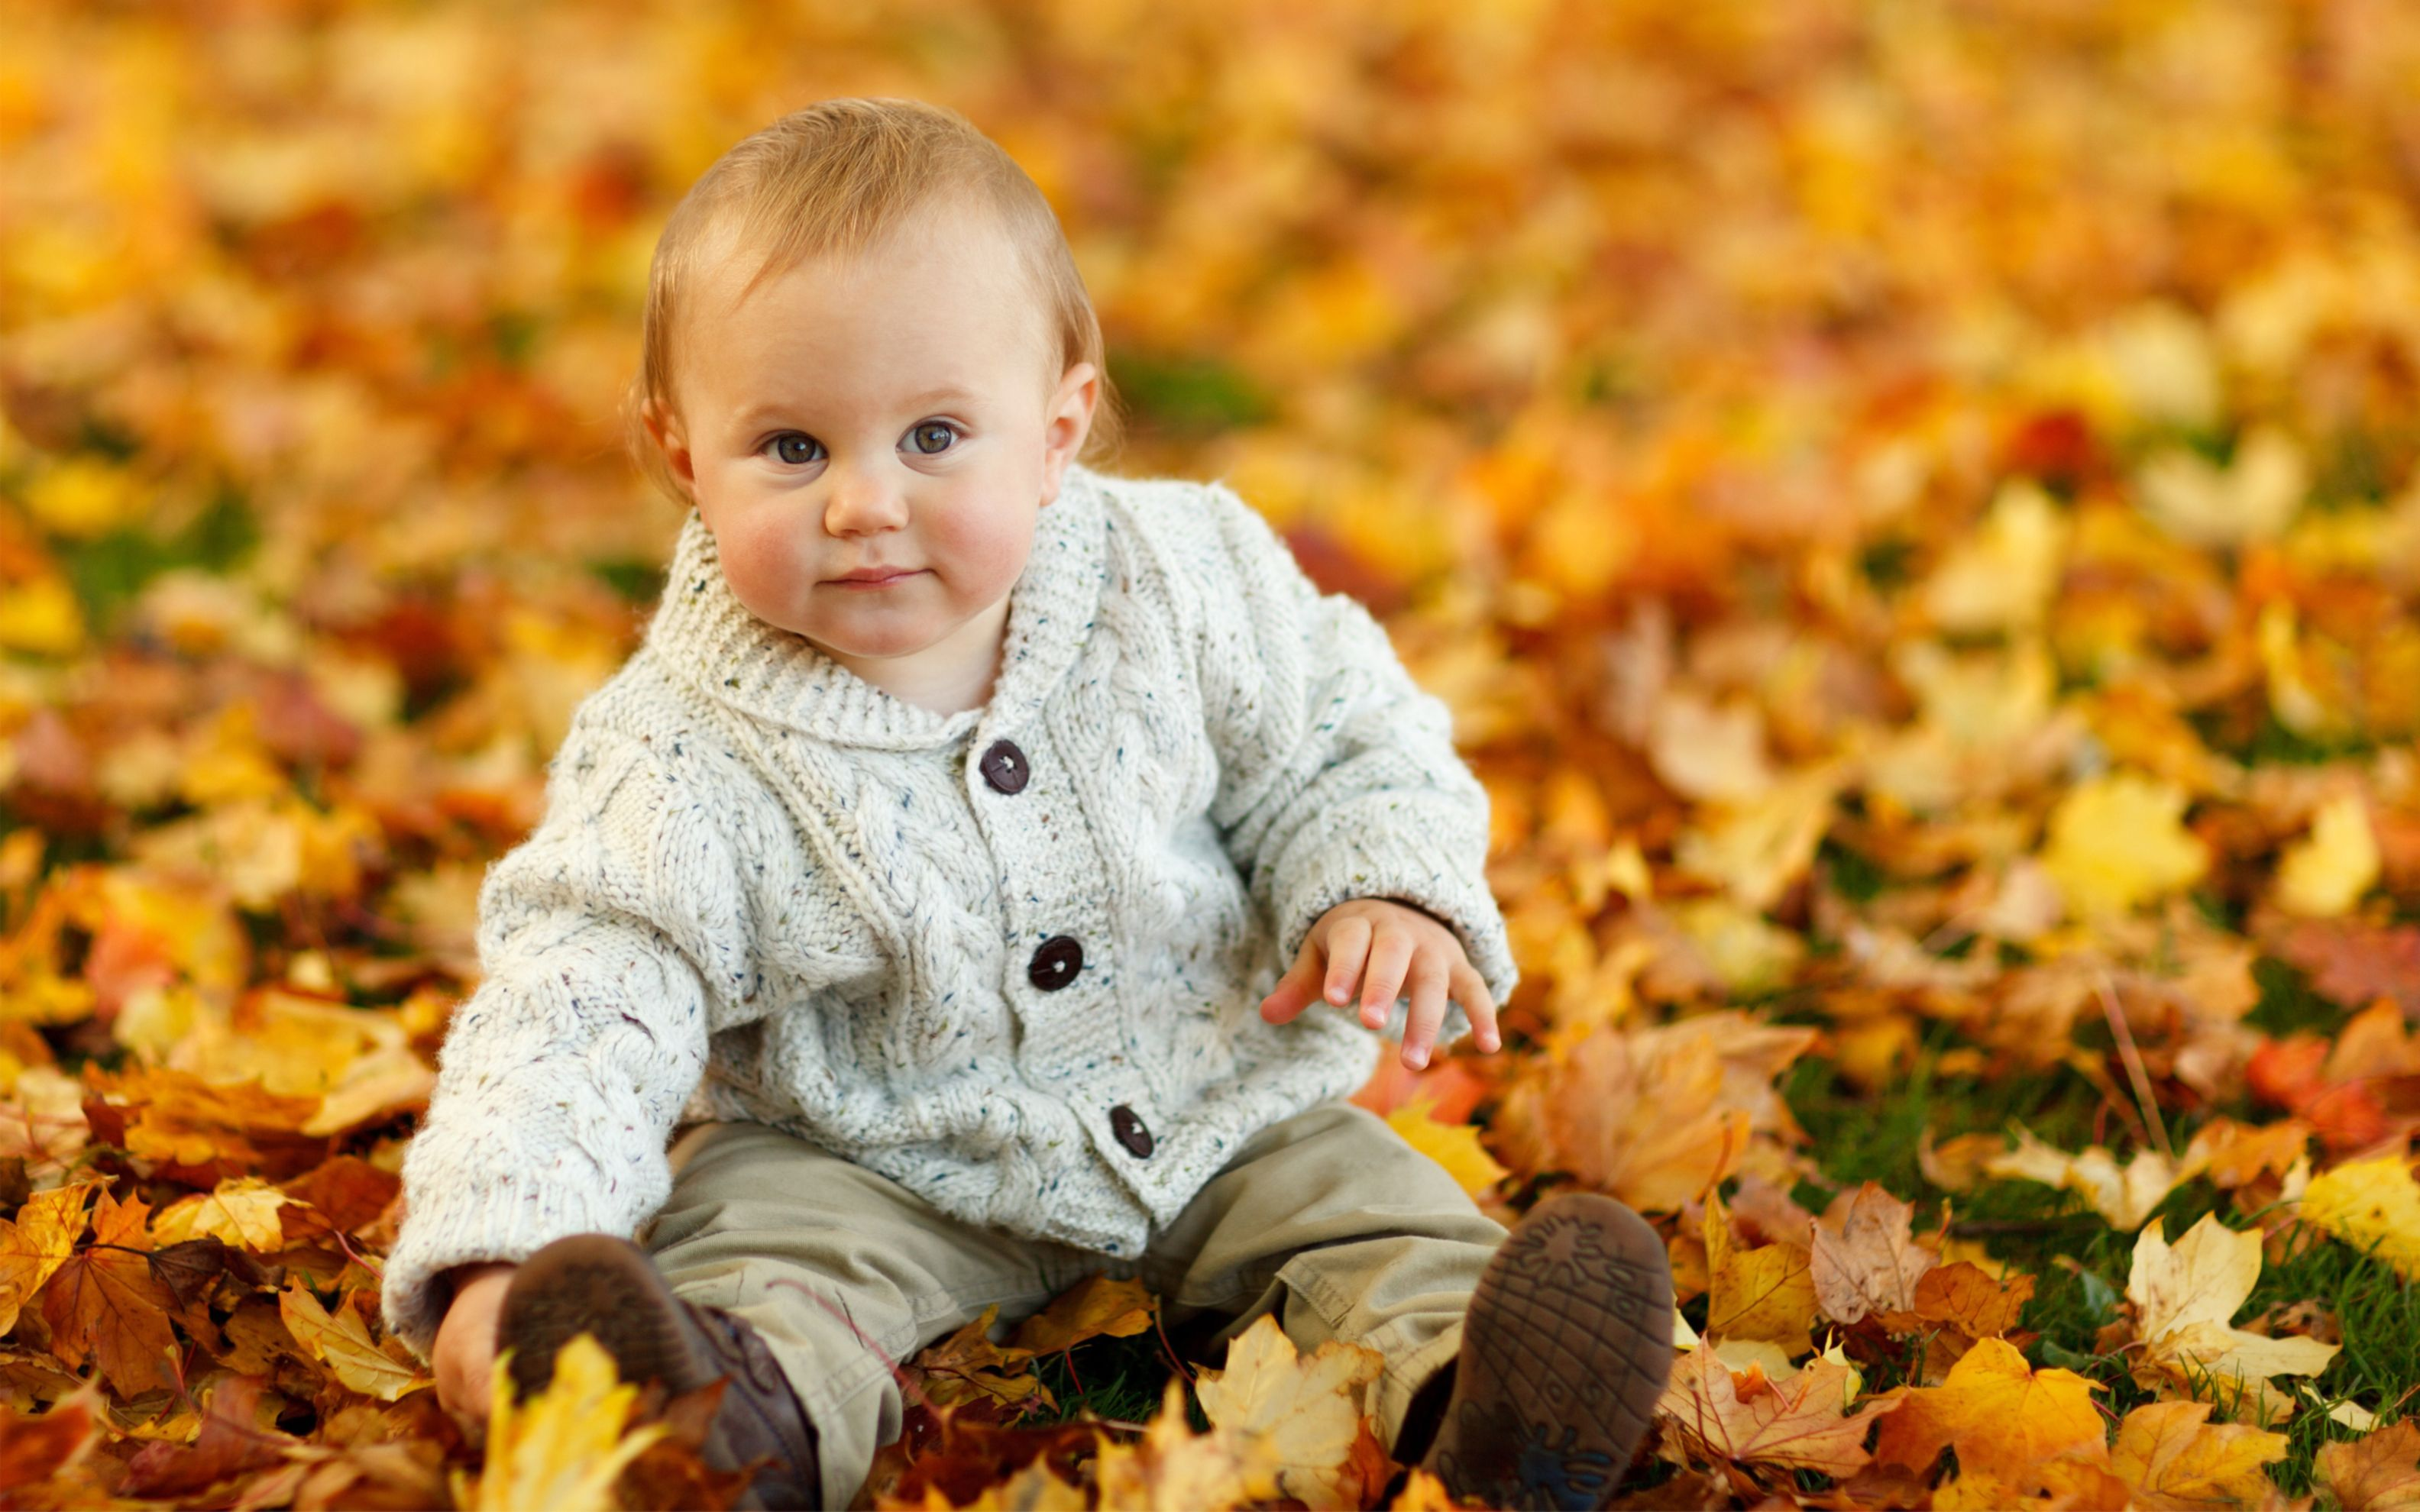 Download free HD Cute Baby Boy Autumn Leaves Wide Wallpaper, image